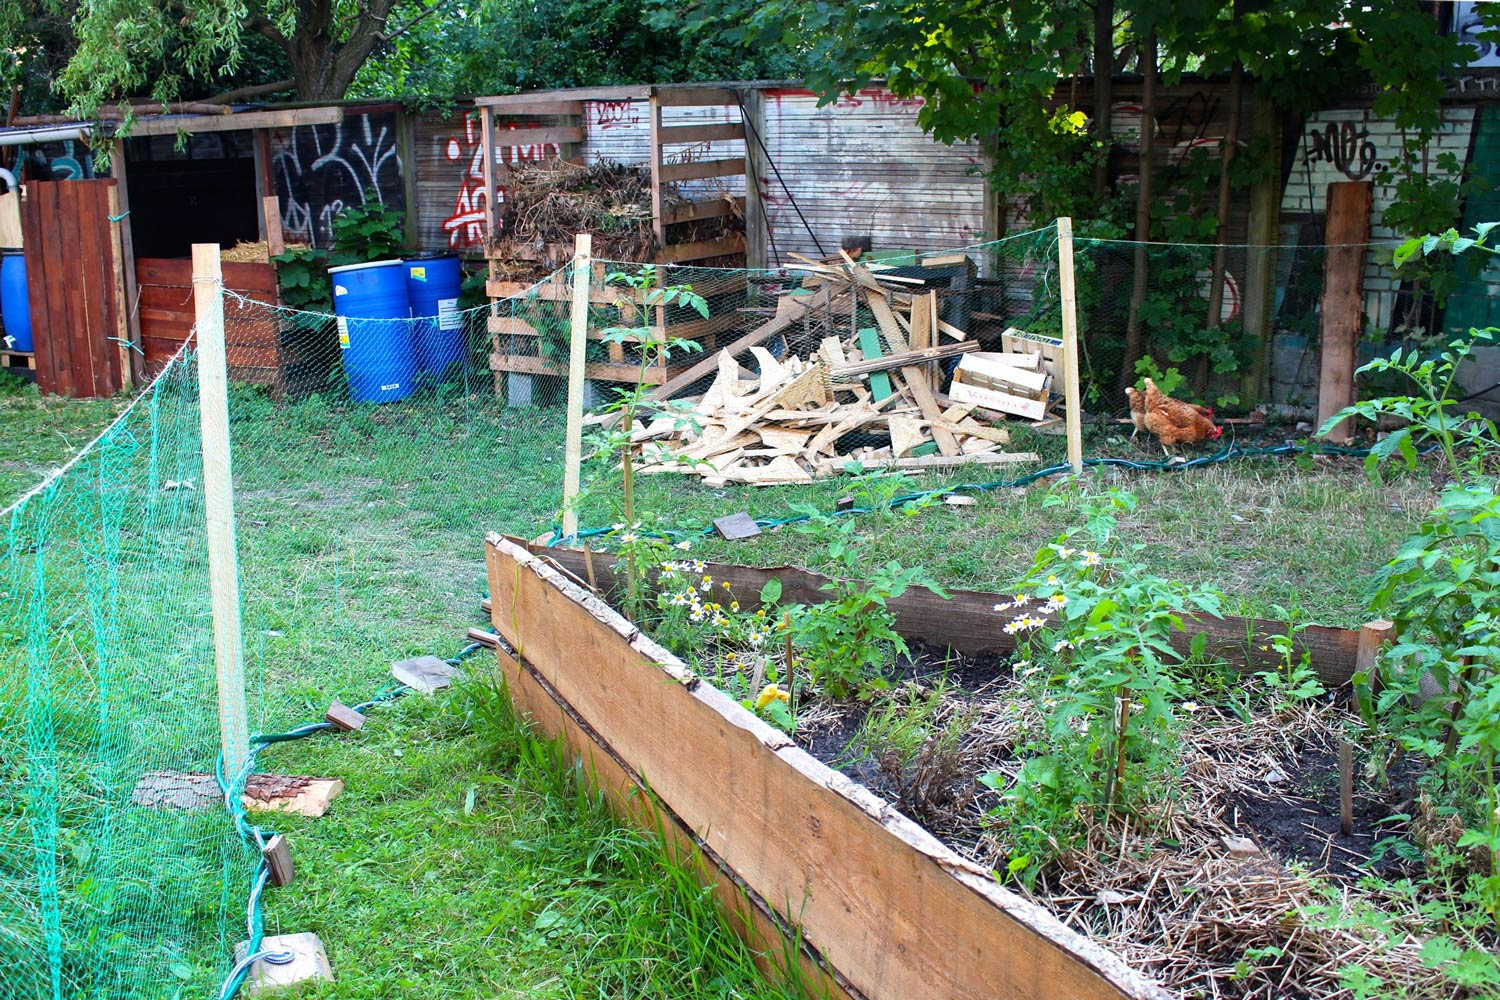 The manoeuverable chicken fence